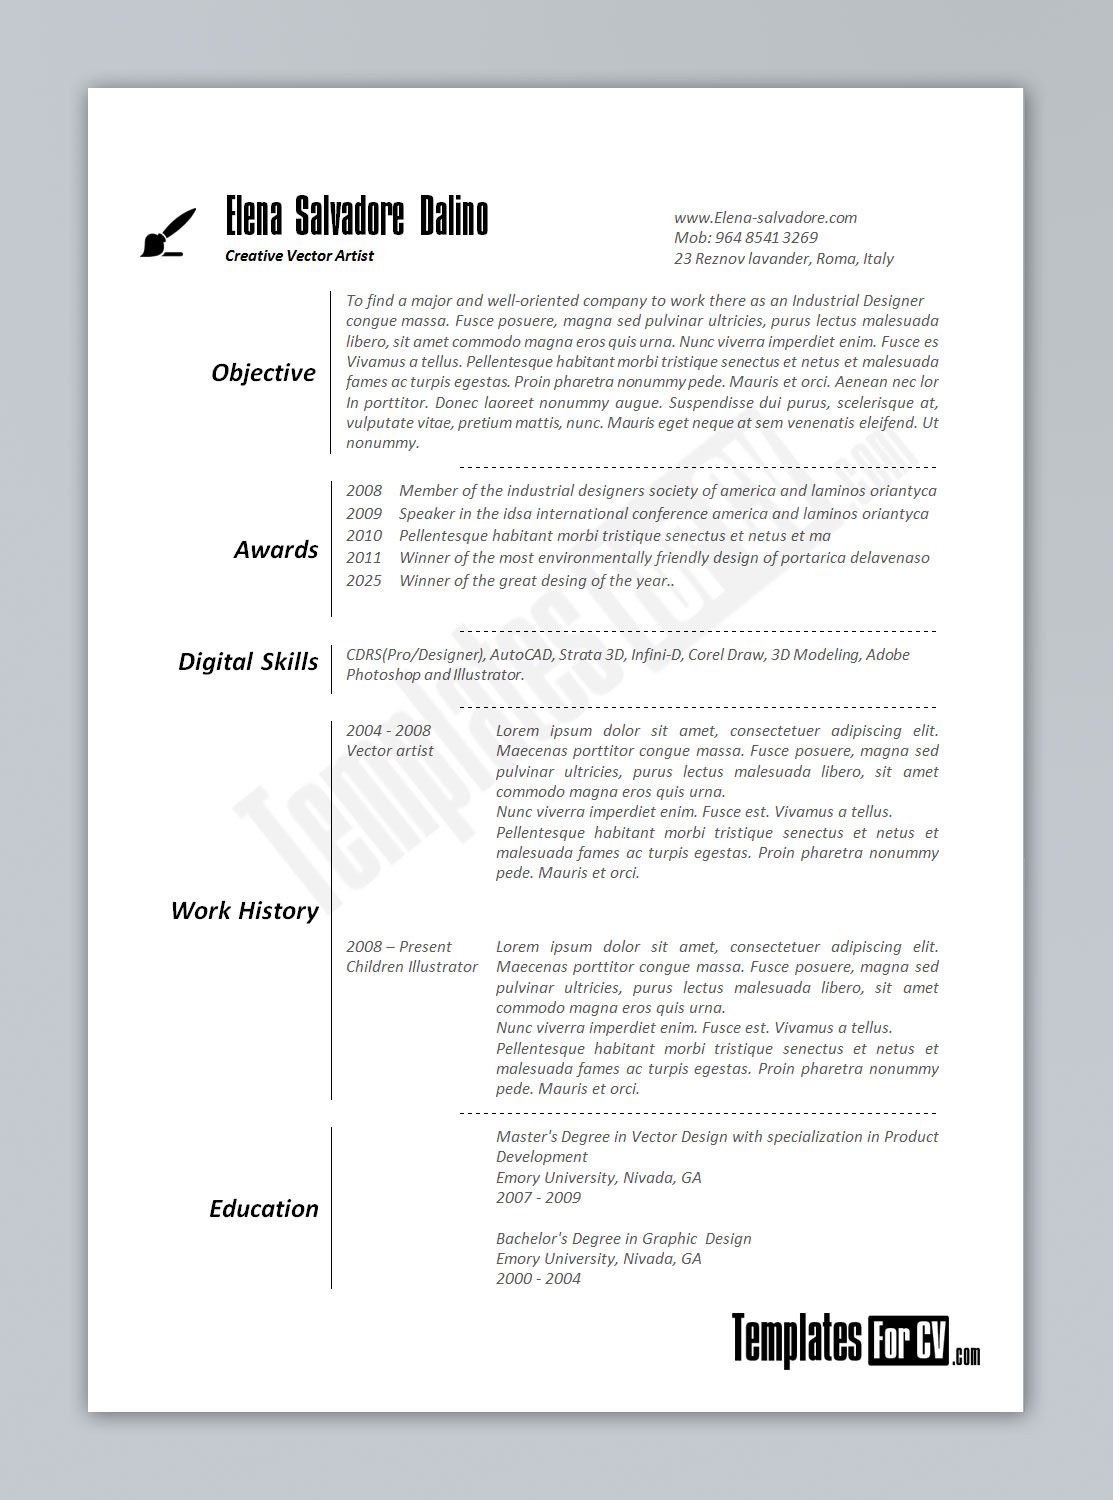 how to make a resume for job on microsoft word resume builder how to make a resume for job on microsoft word 2007 how to make a resume